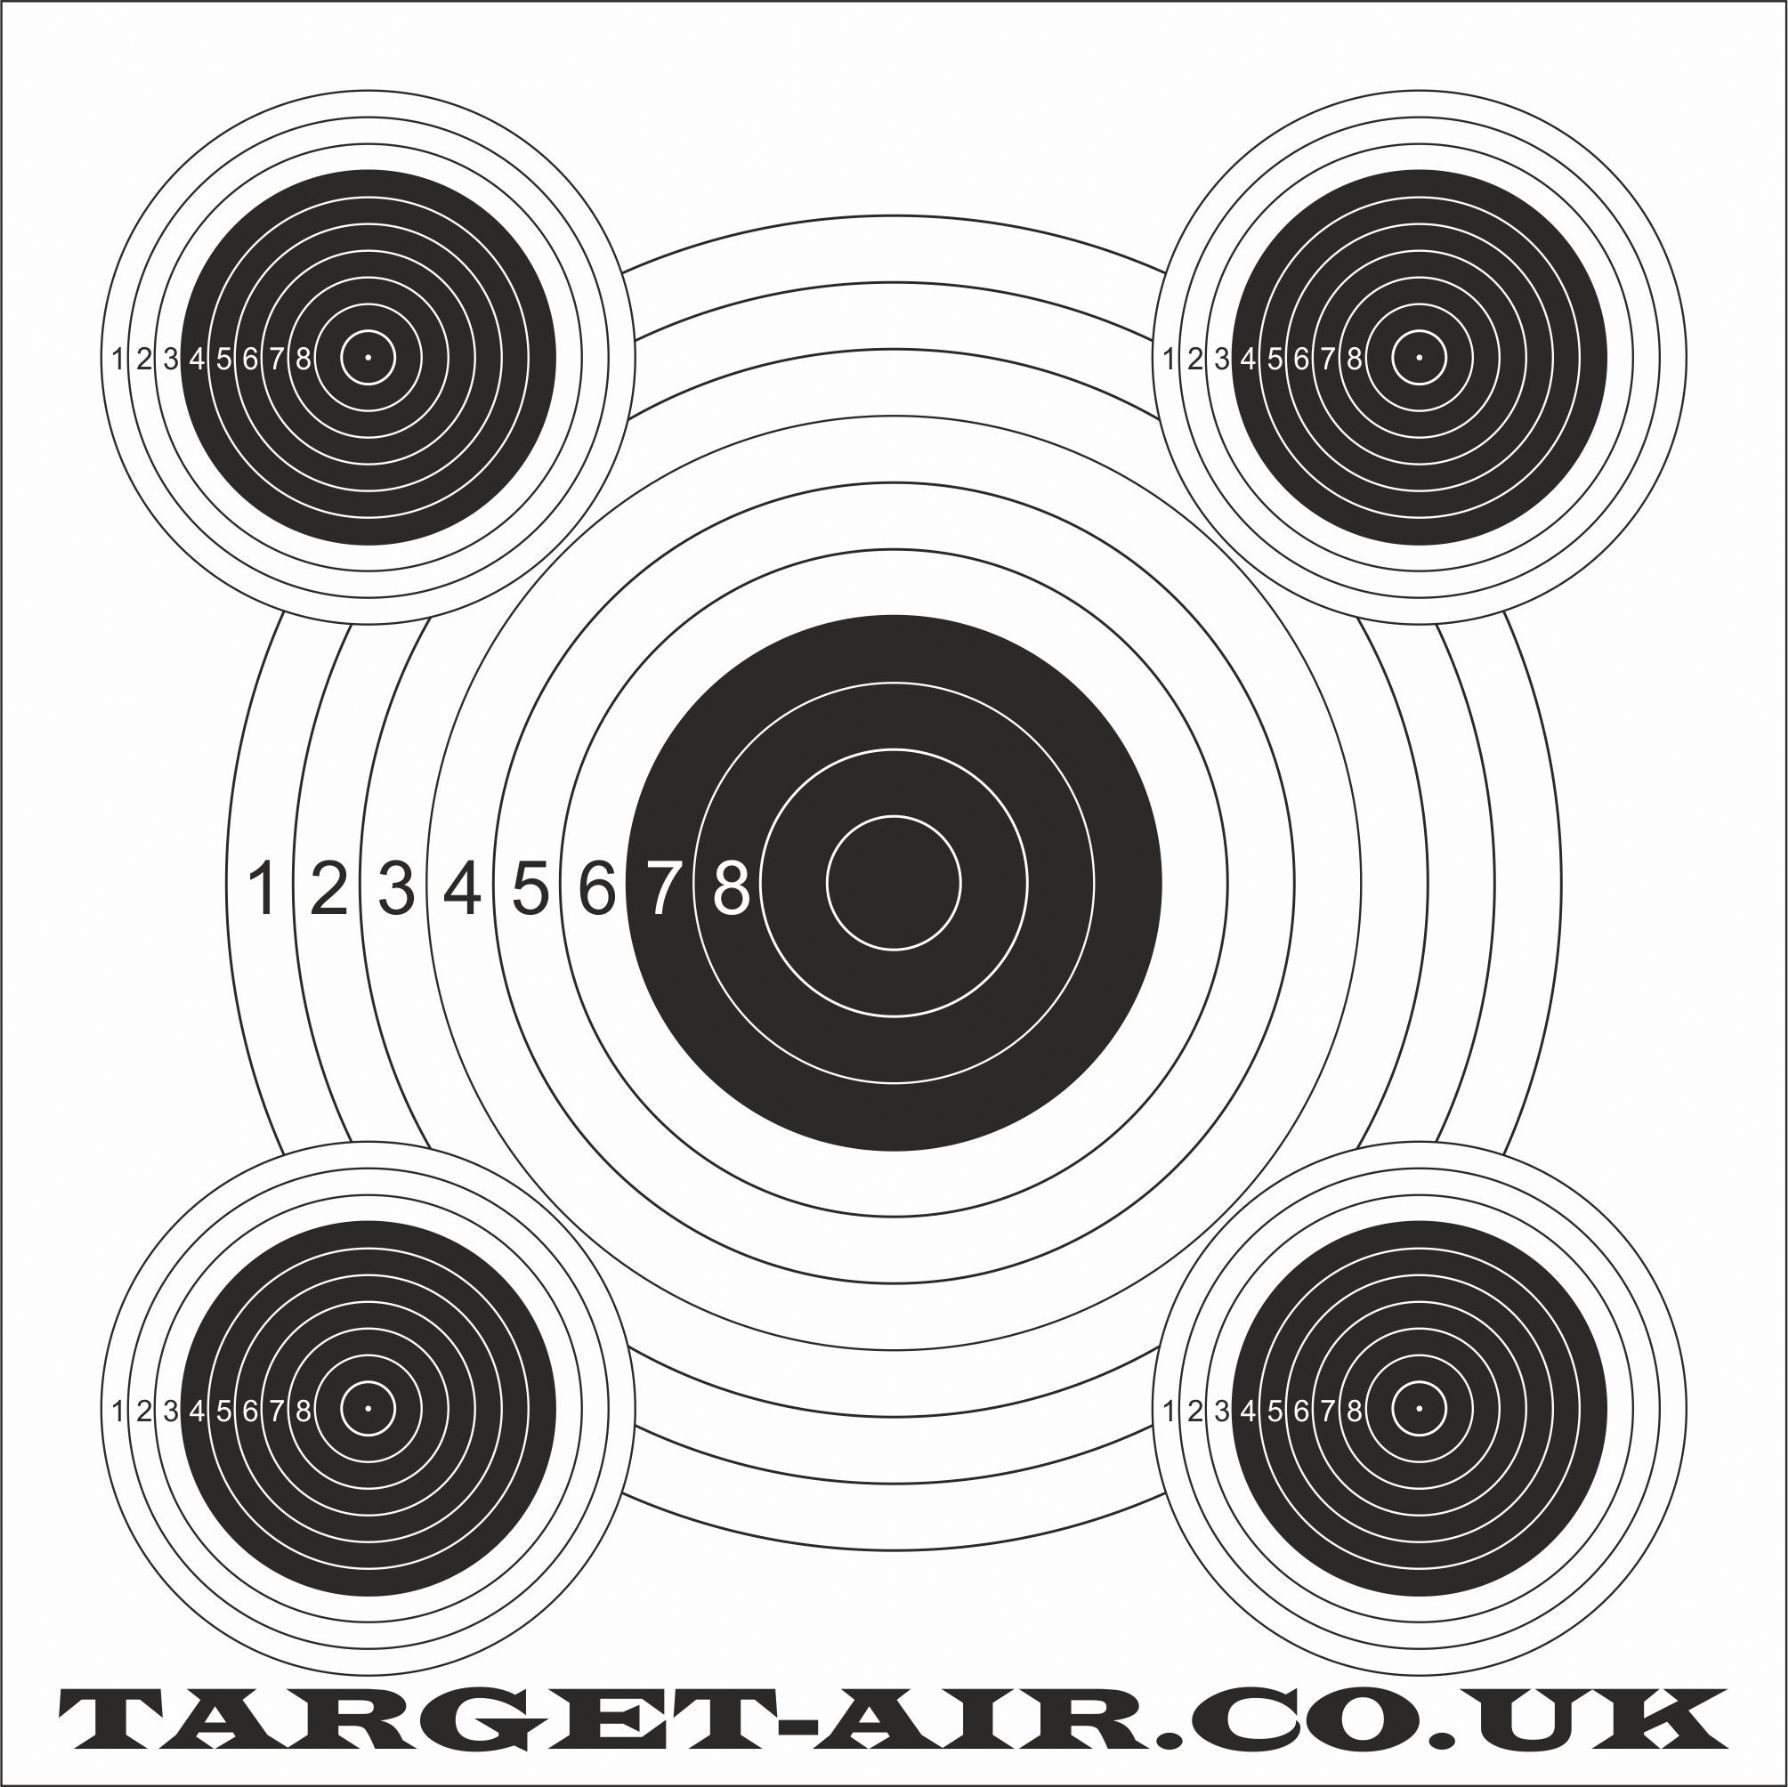 This is an image of Unusual Printable Airgun Targets